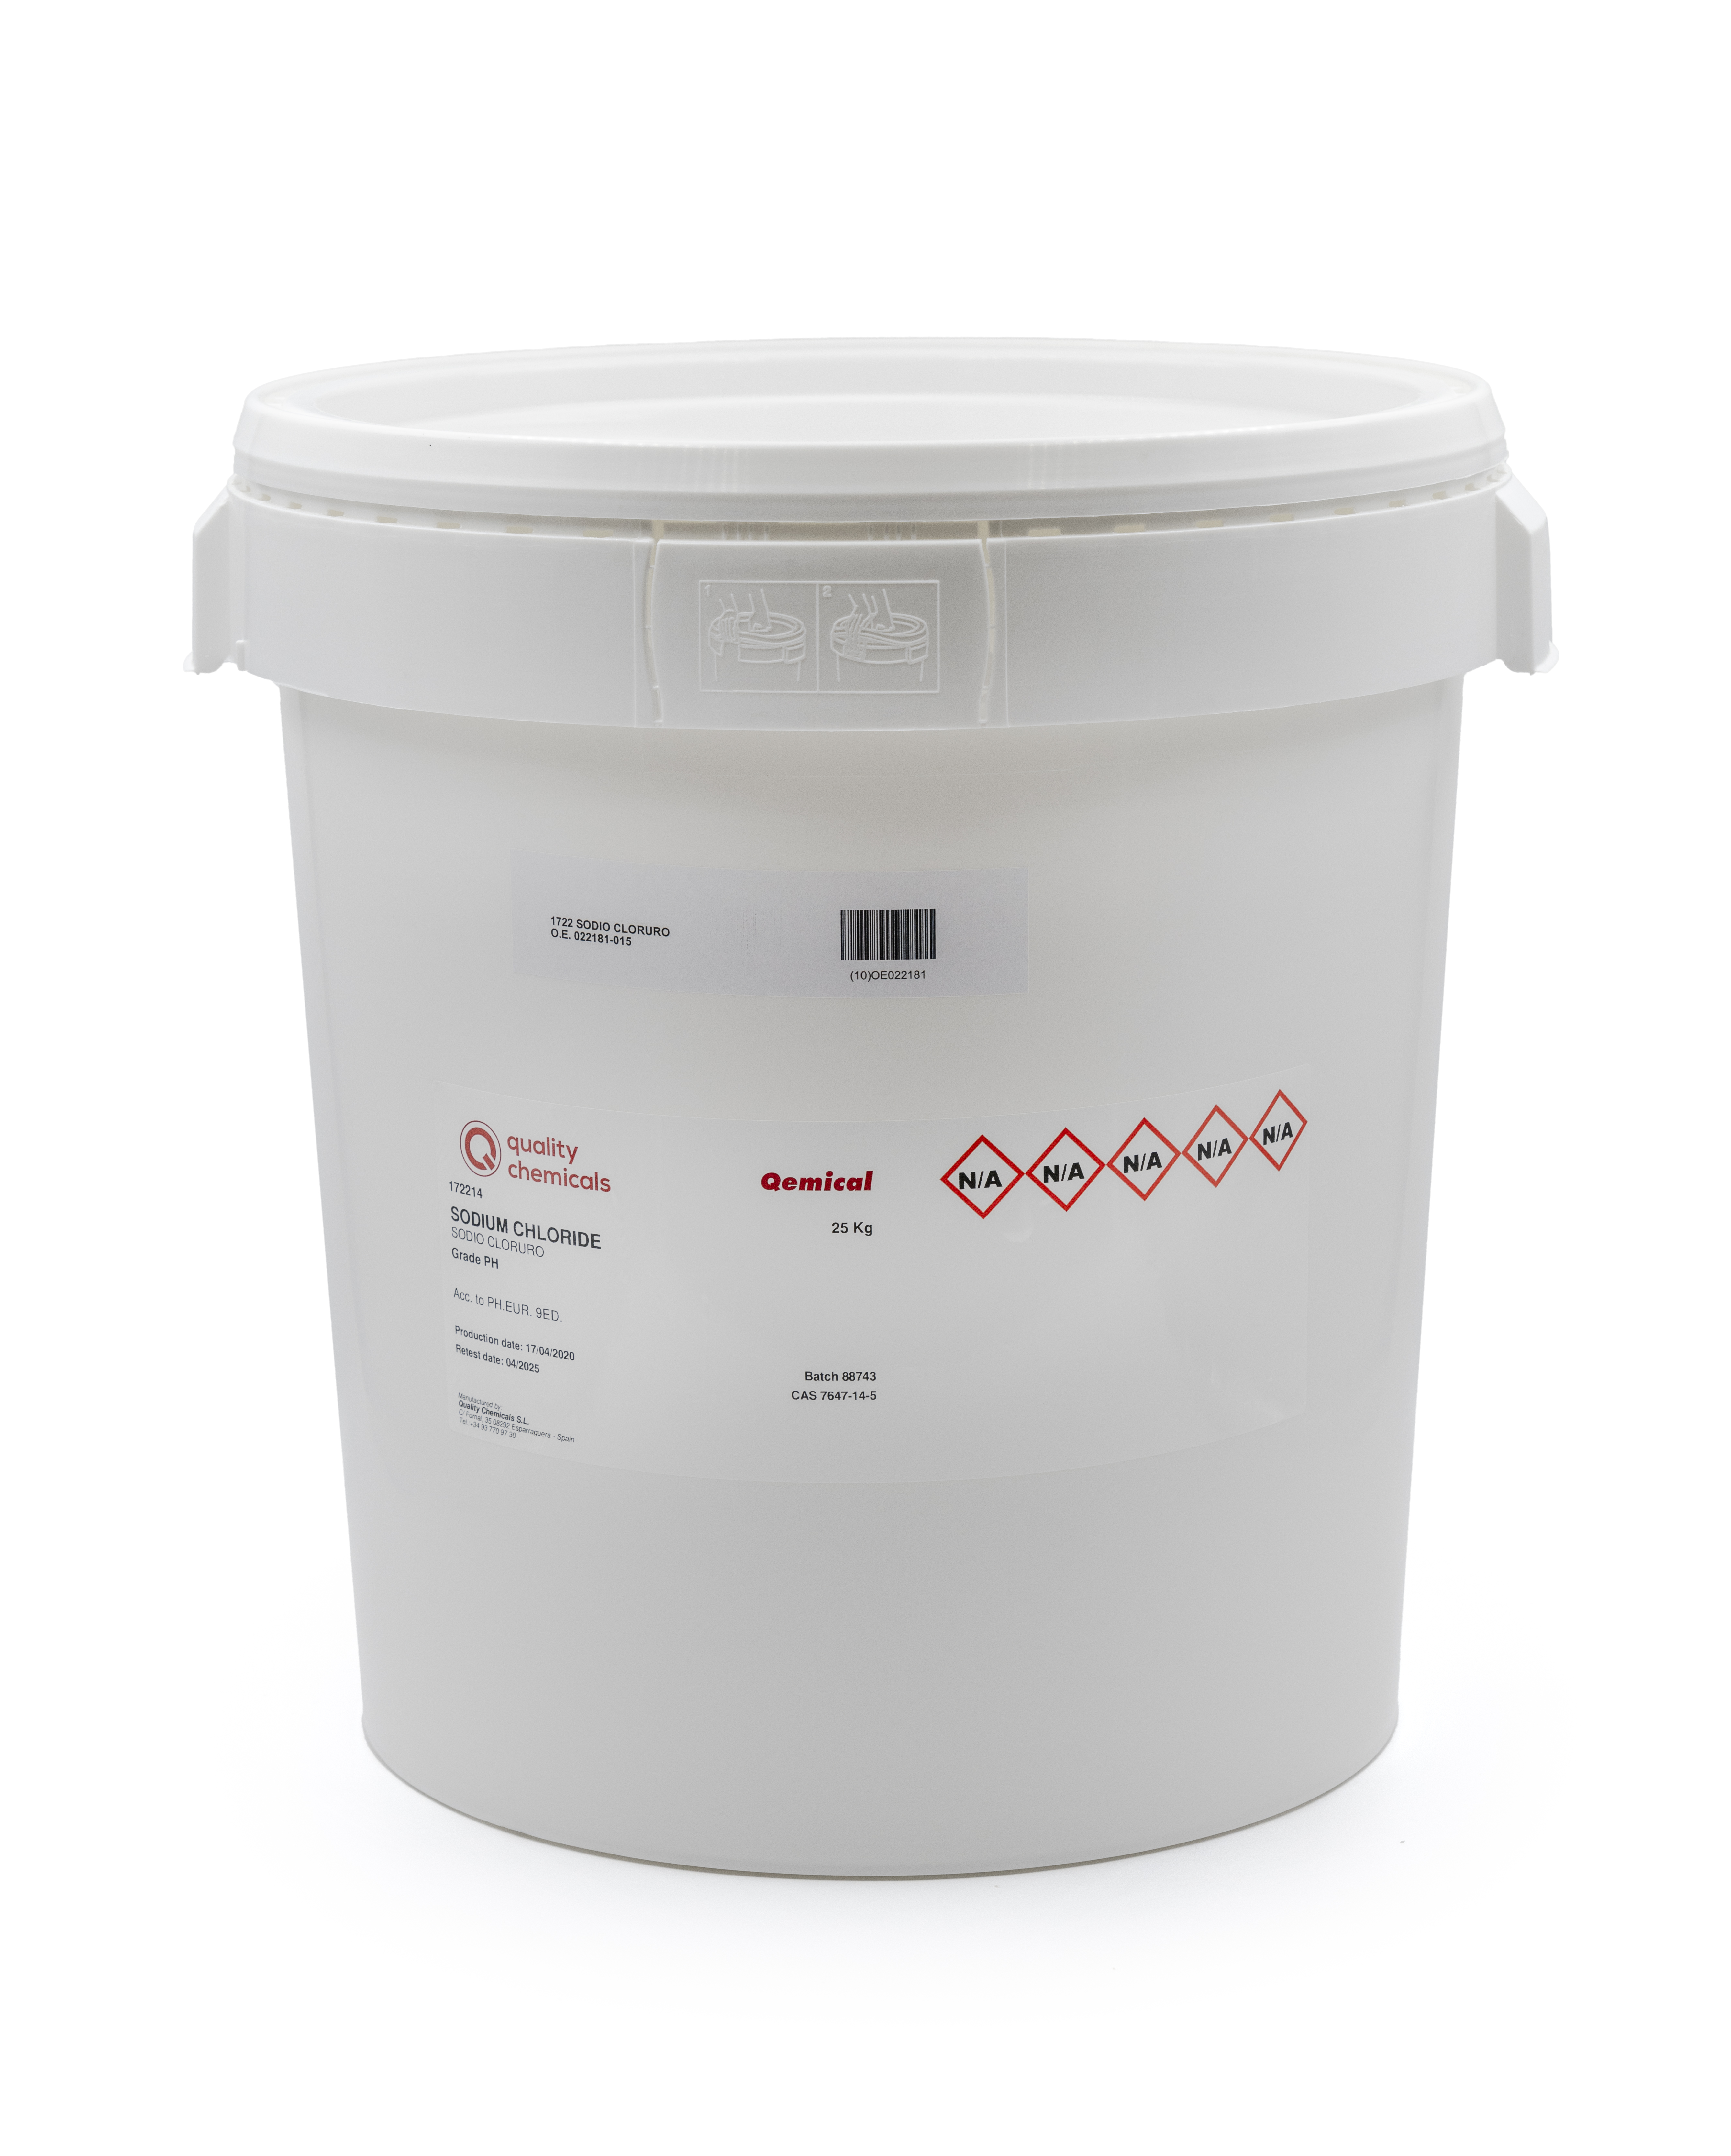 PLASTIC DRUM 30L (FOR SOLIDS), 2 internal bags with desiccant